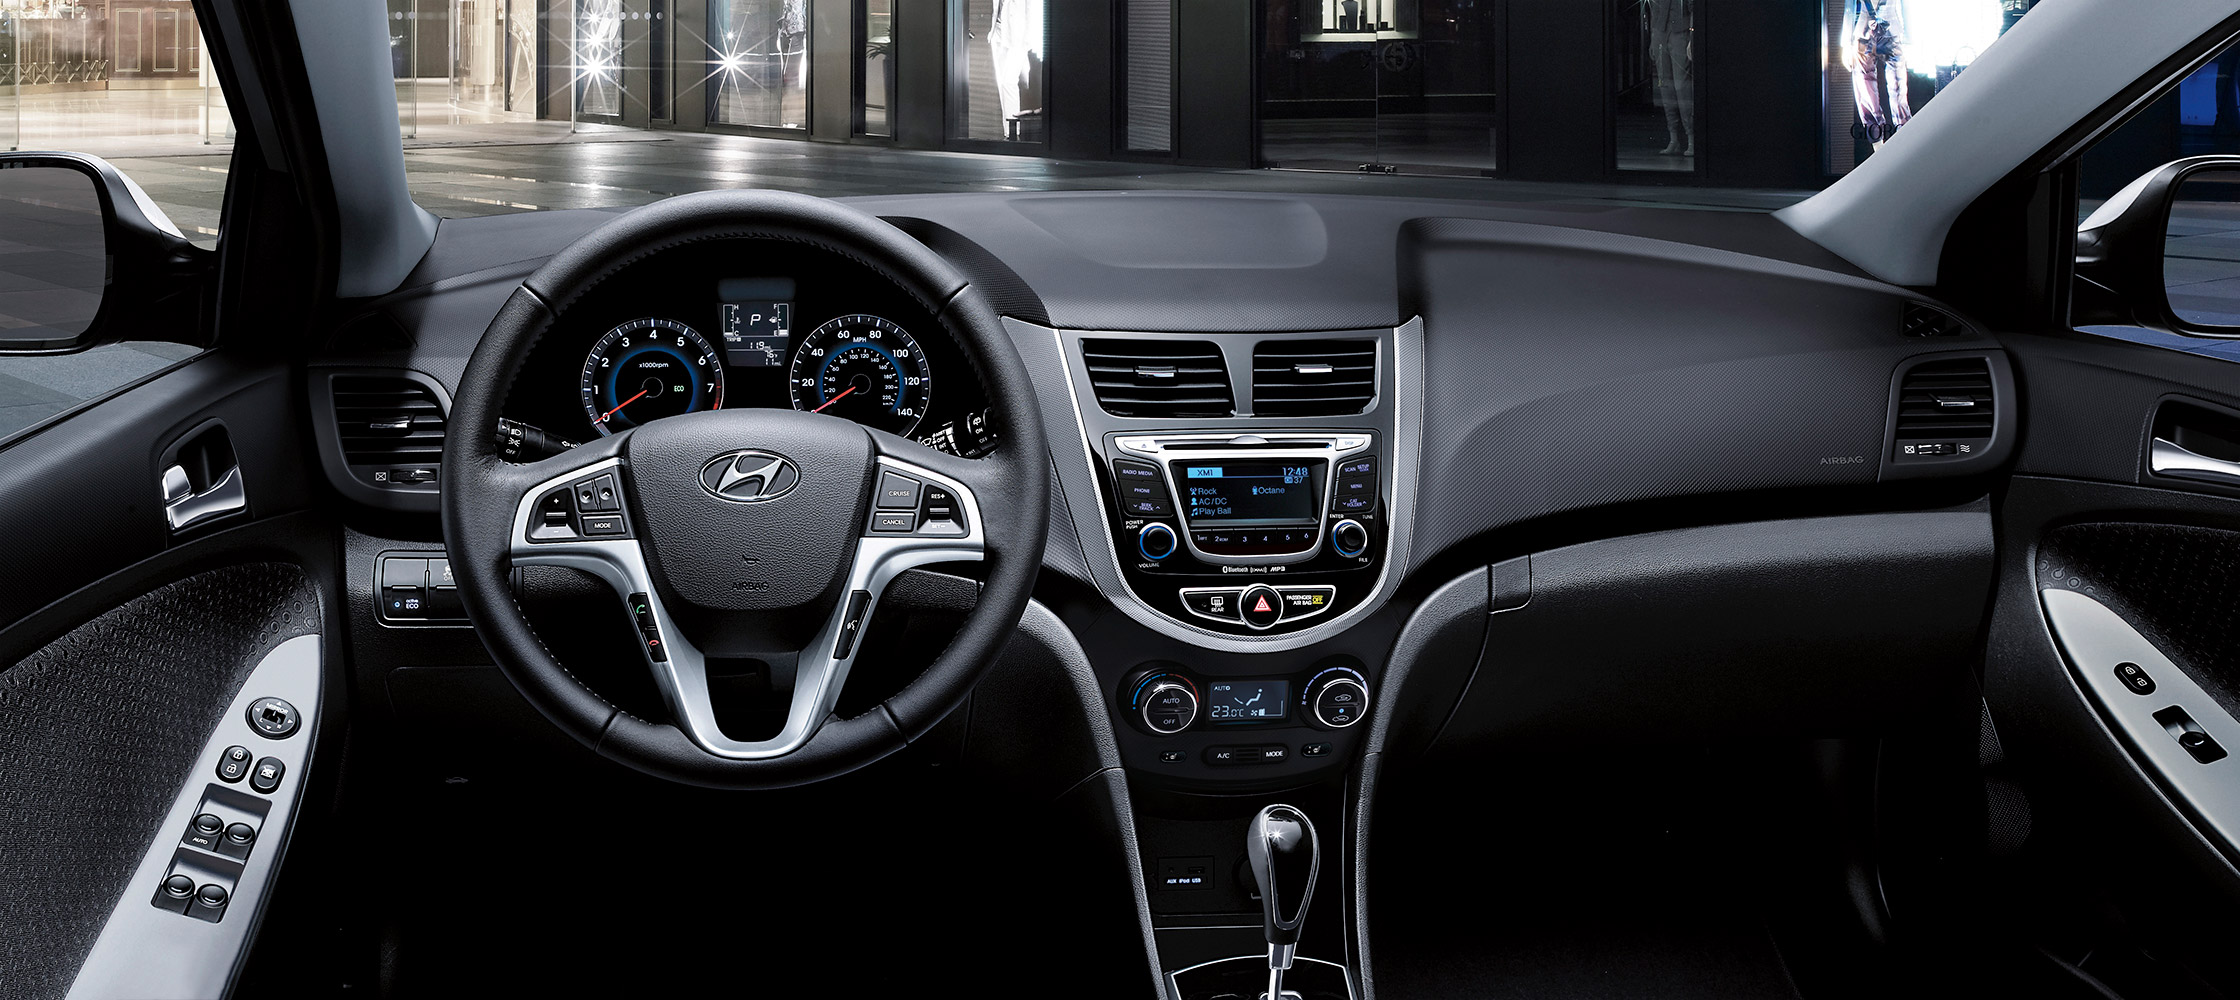 Hyundai Accent hatchback 2017  interior photo of driver's space looking outwards with steering wheel.